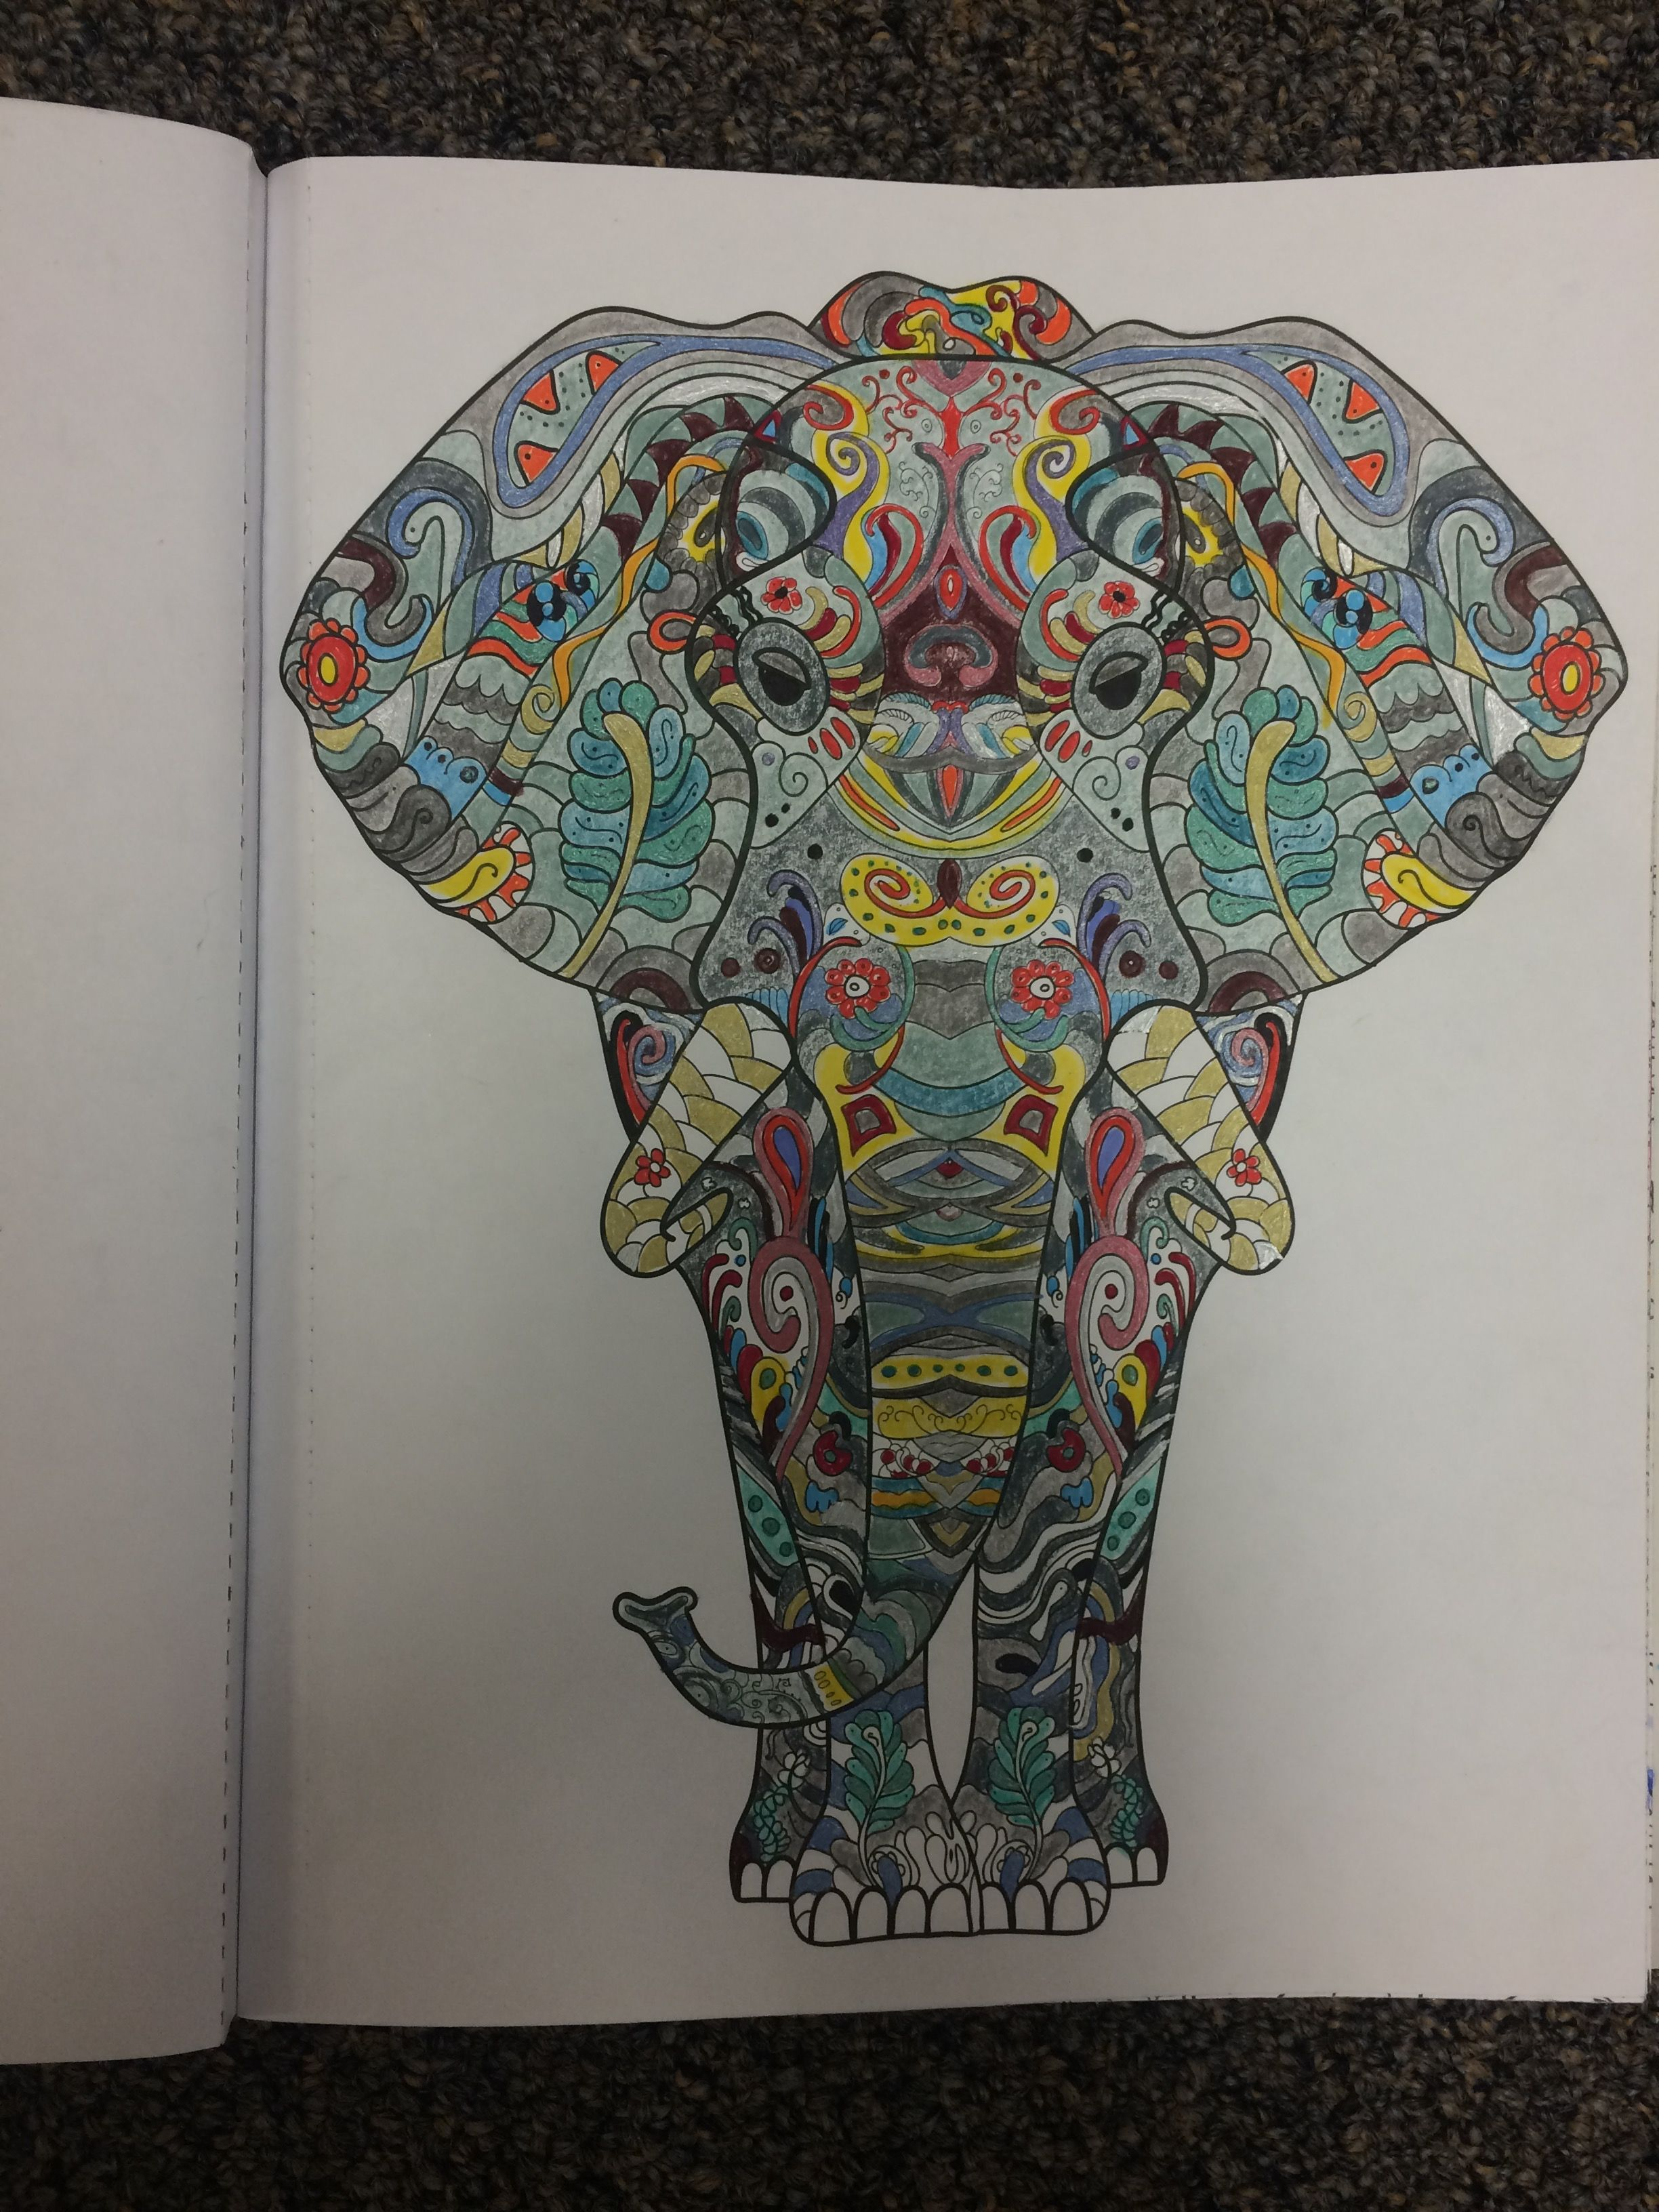 Pin On Coloring Books And Supplies